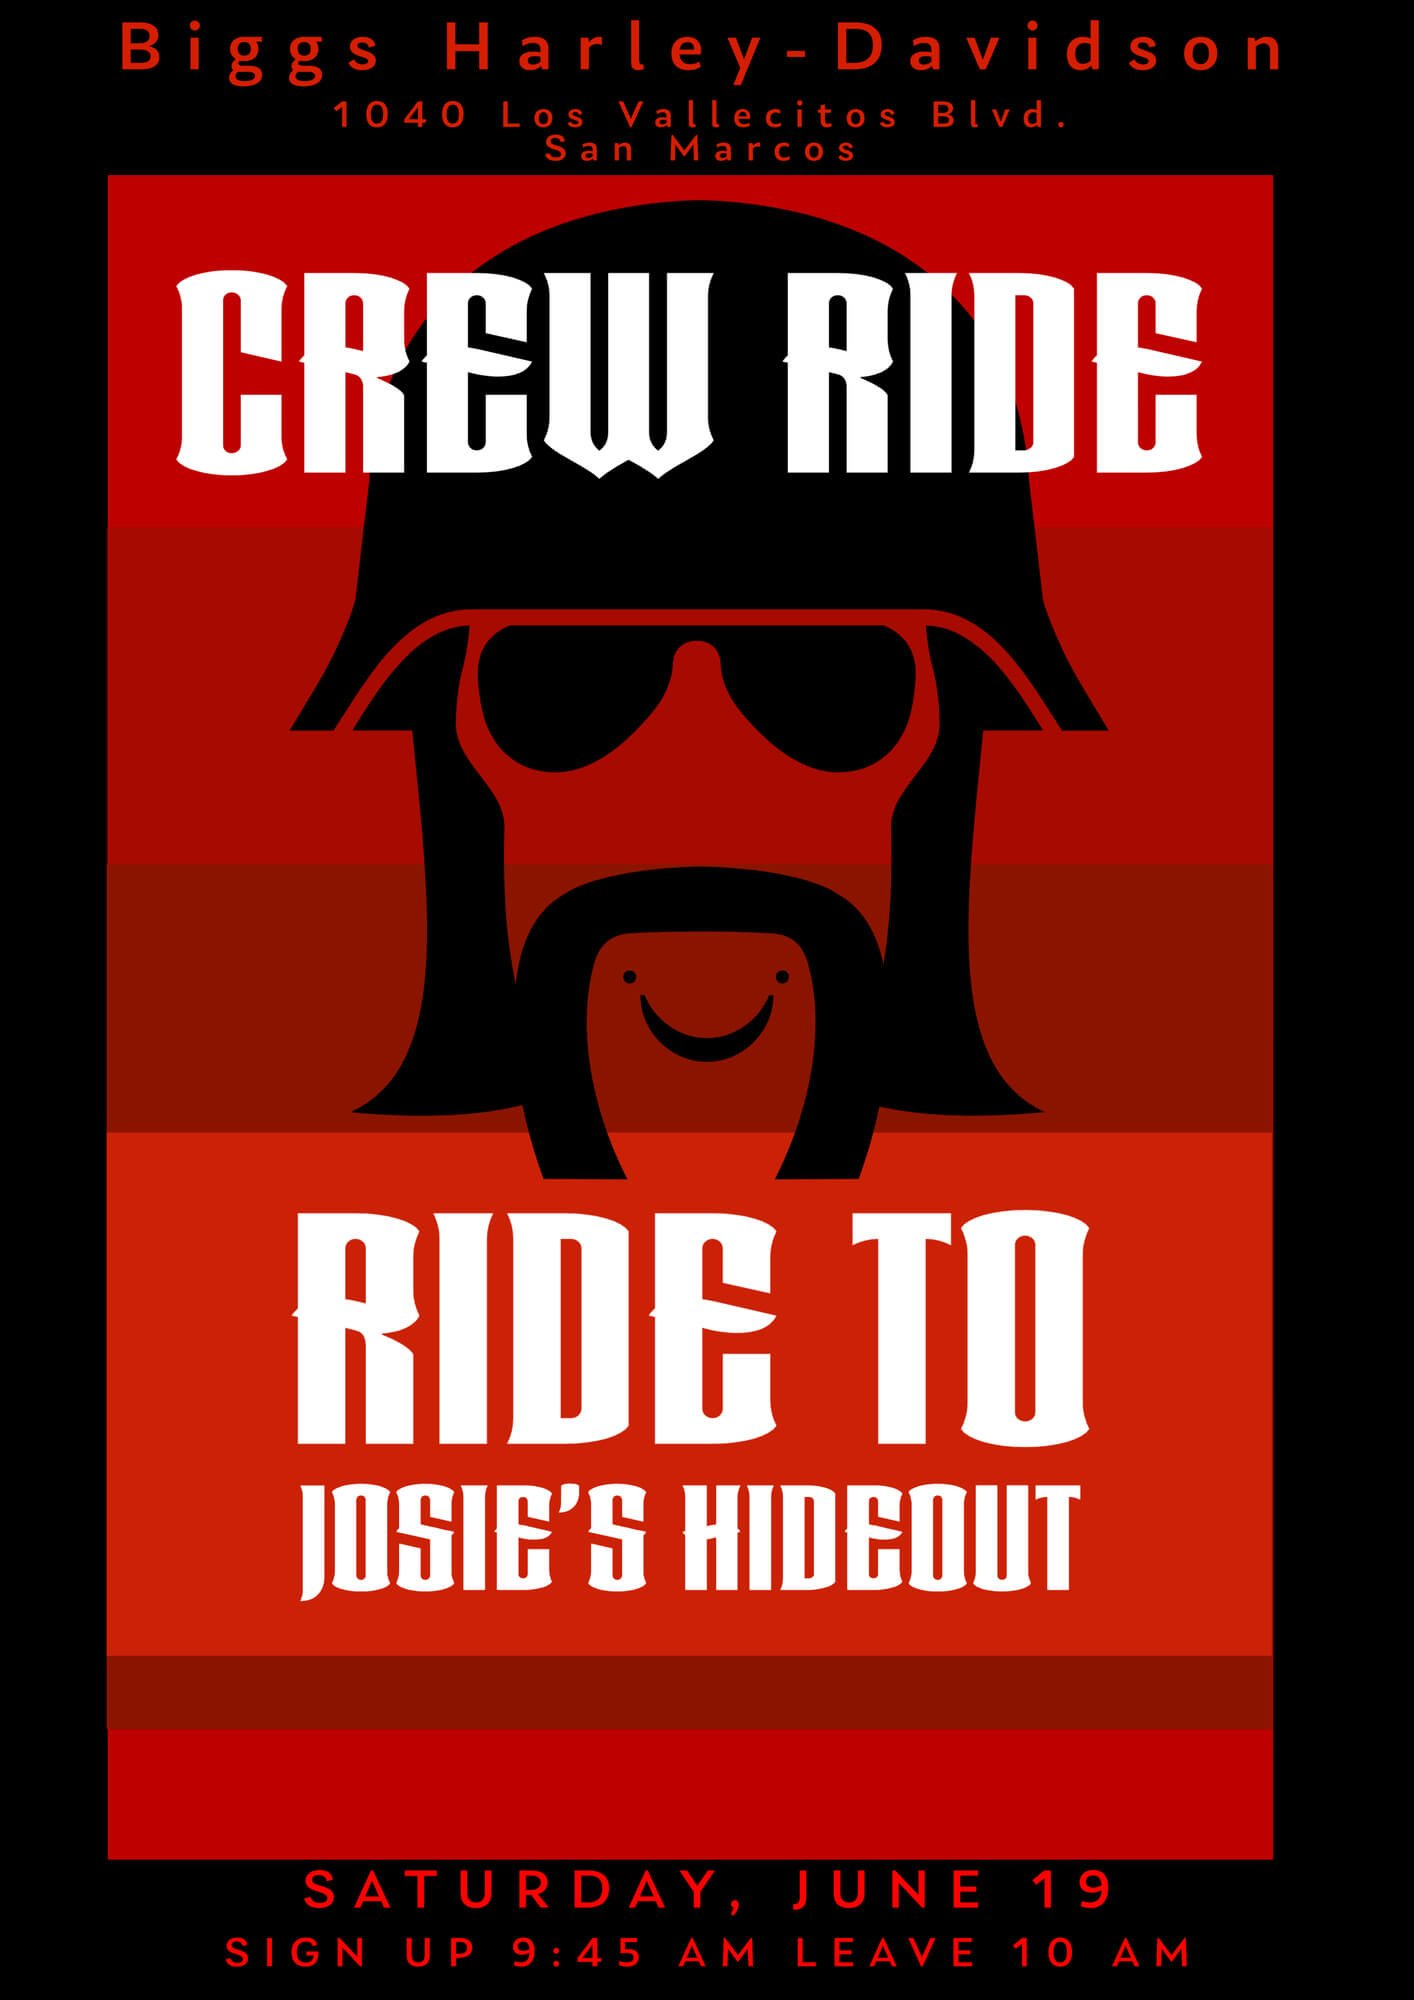 Crew Ride To Josie's Hideout With Biggs Harley